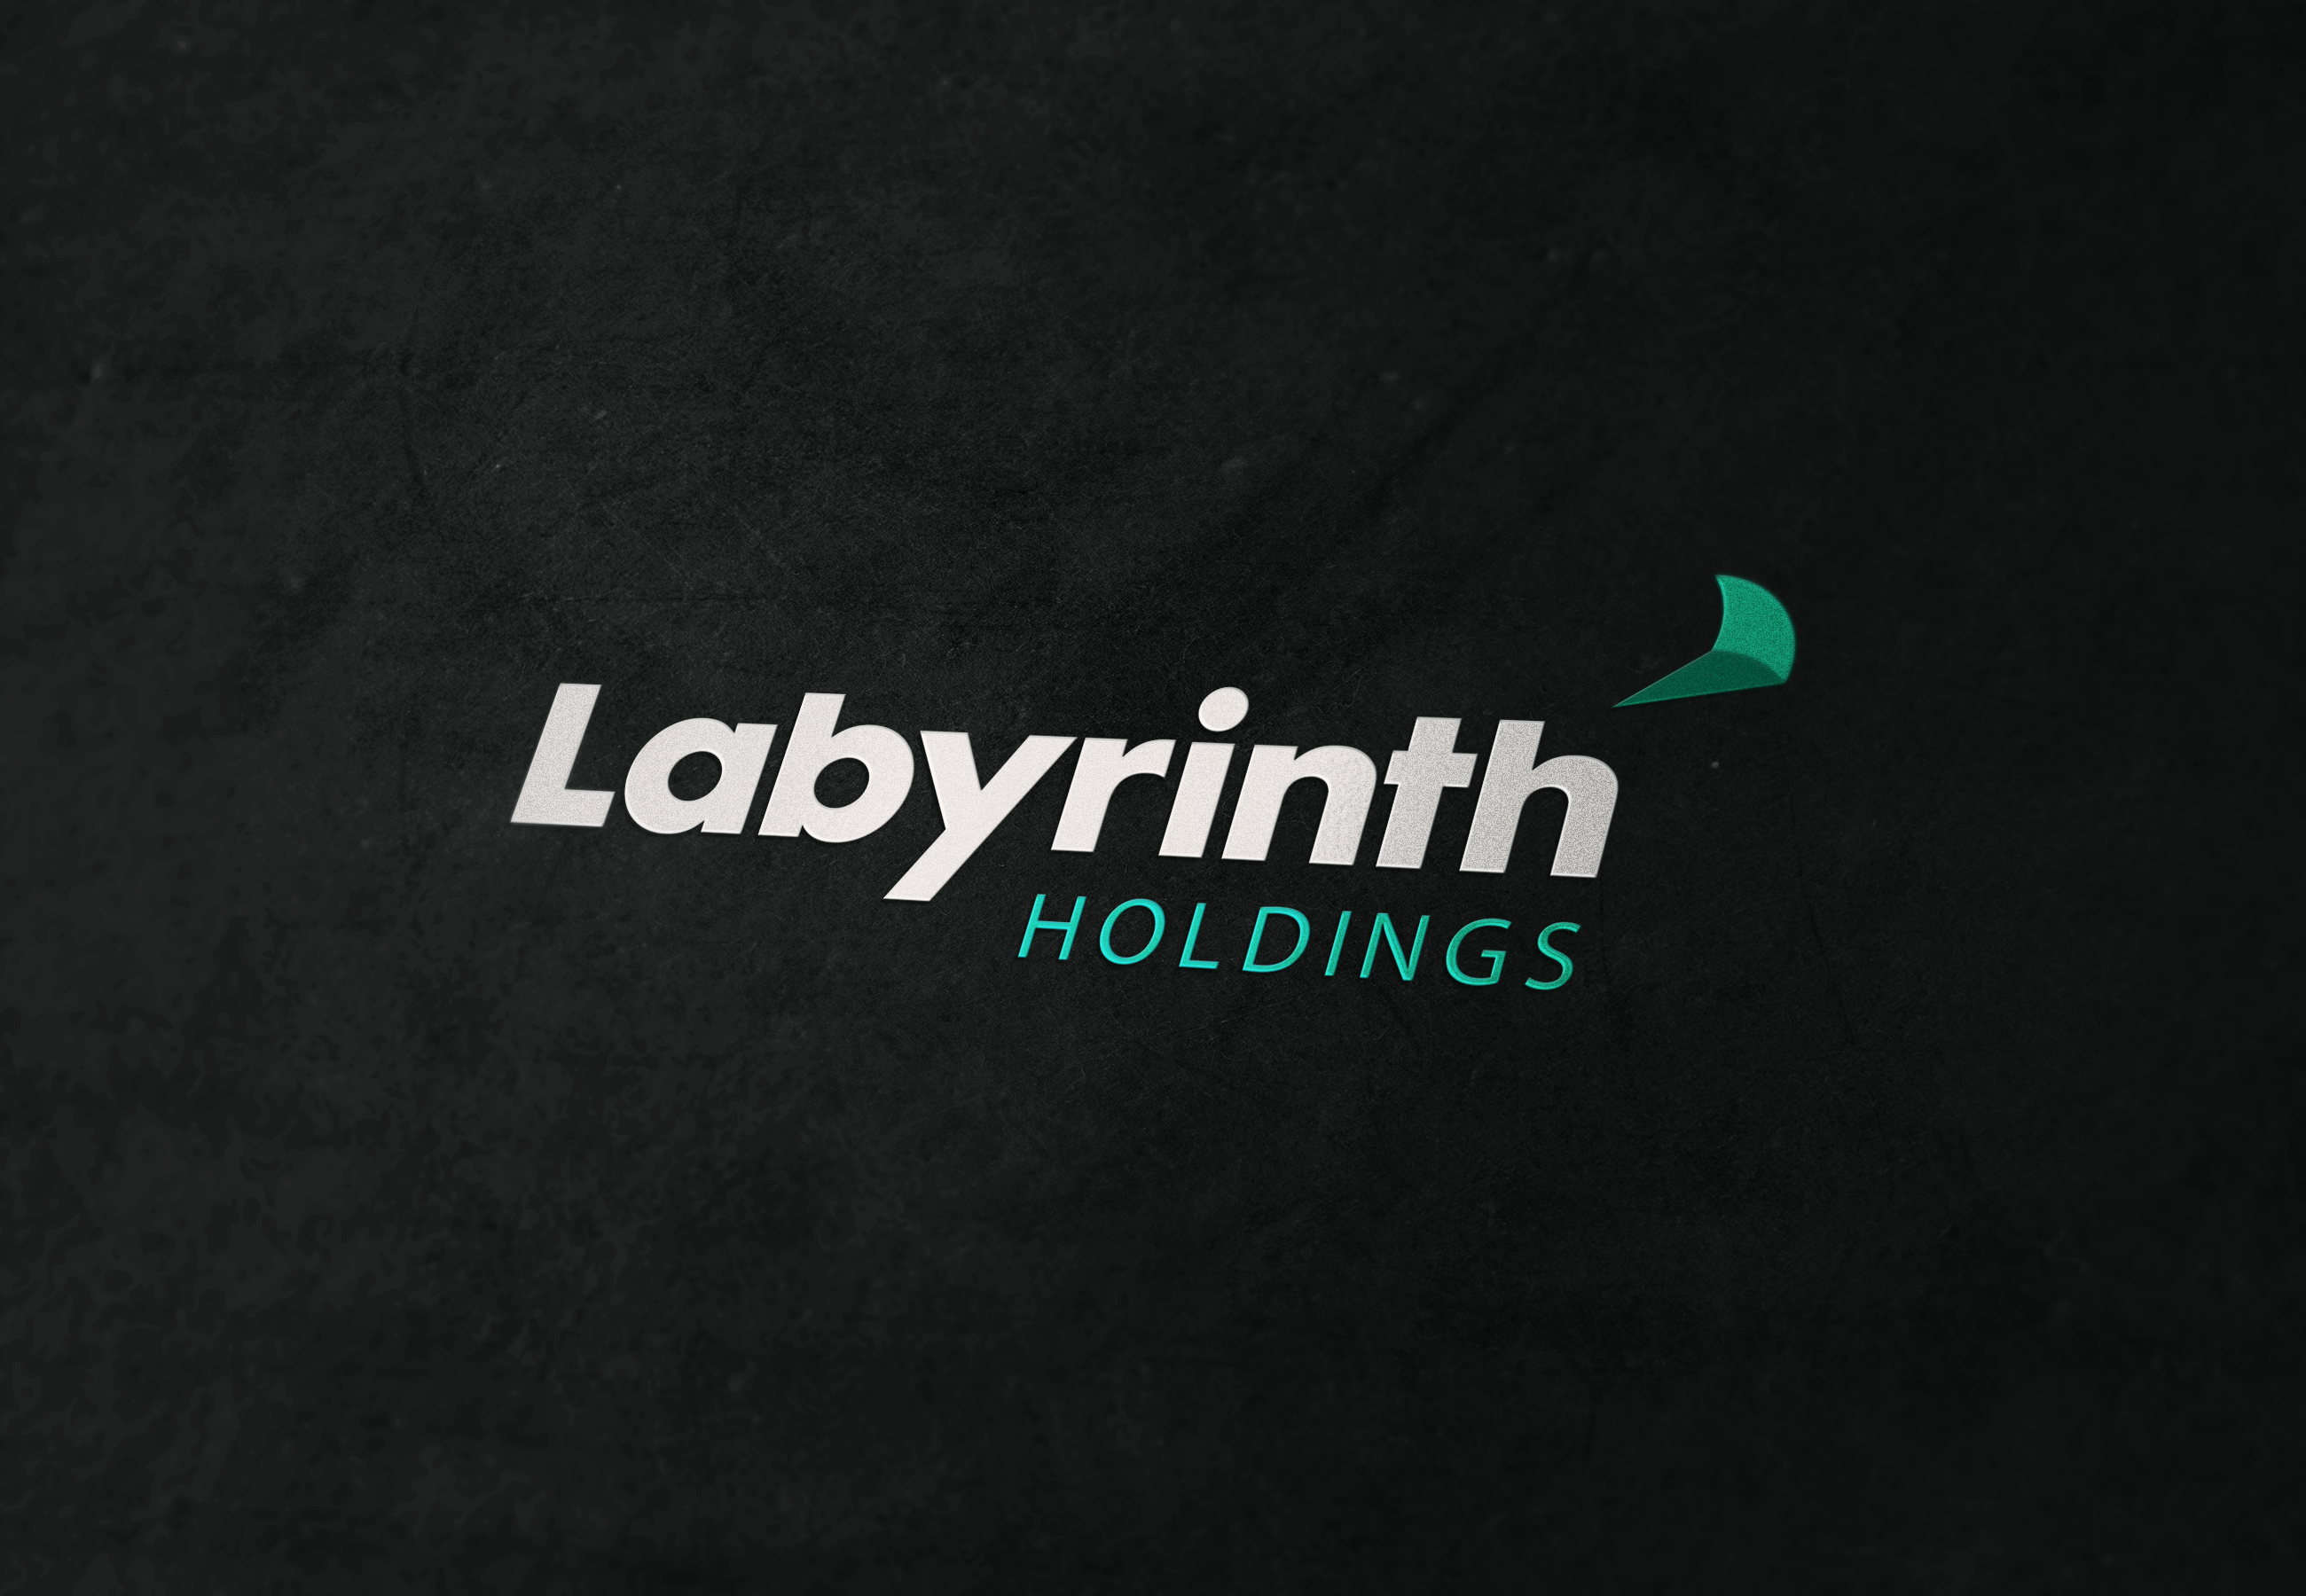 Labyrinth Holdings logo on felt.